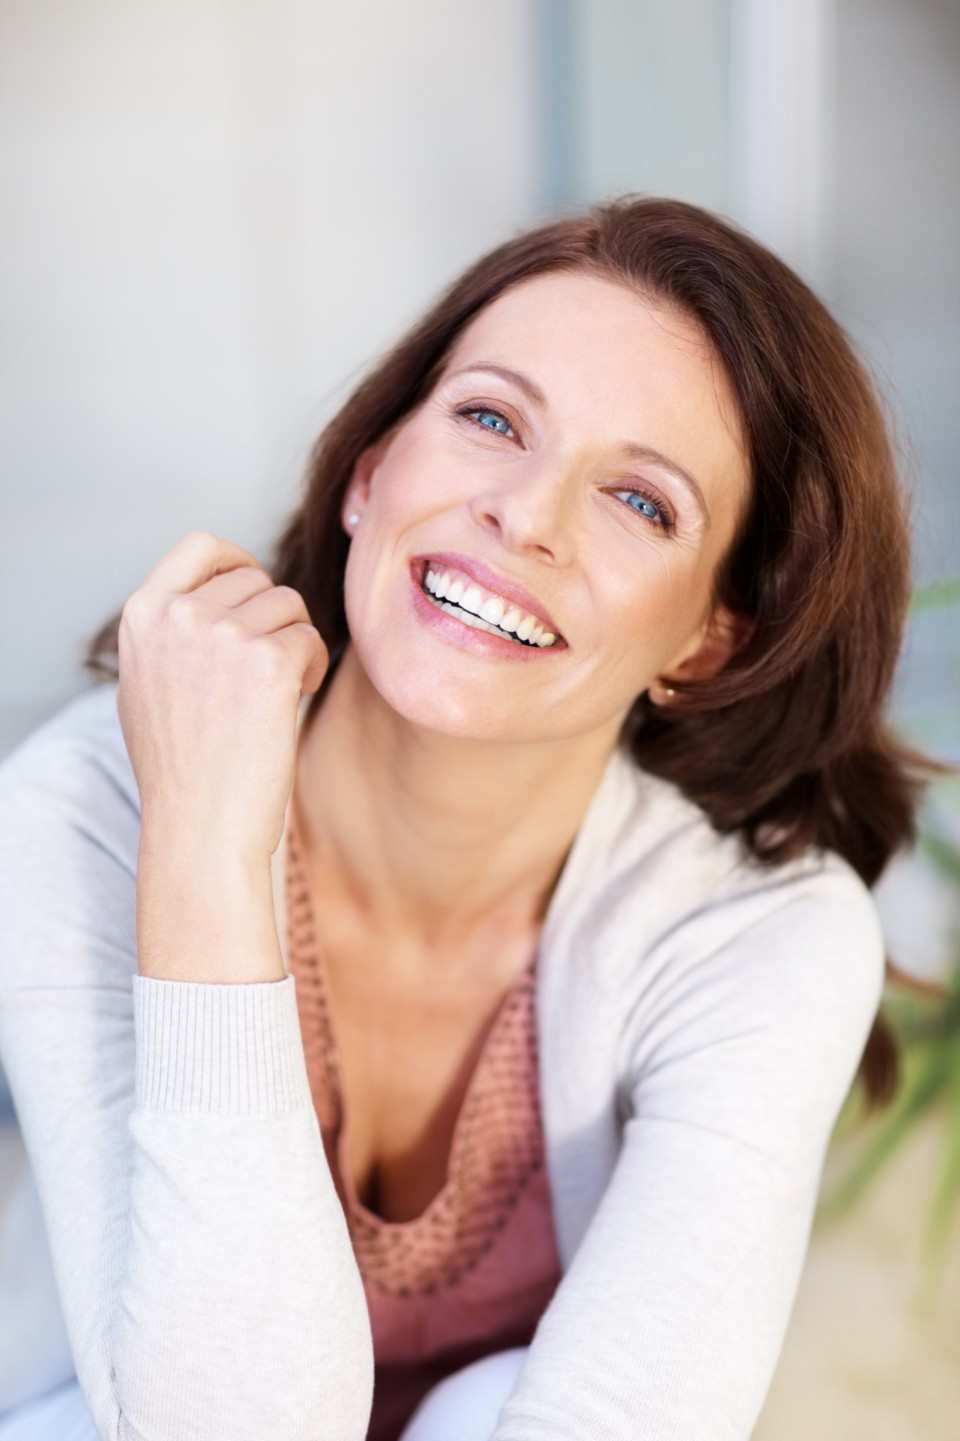 Solve Your Smile Problem With Invisalign